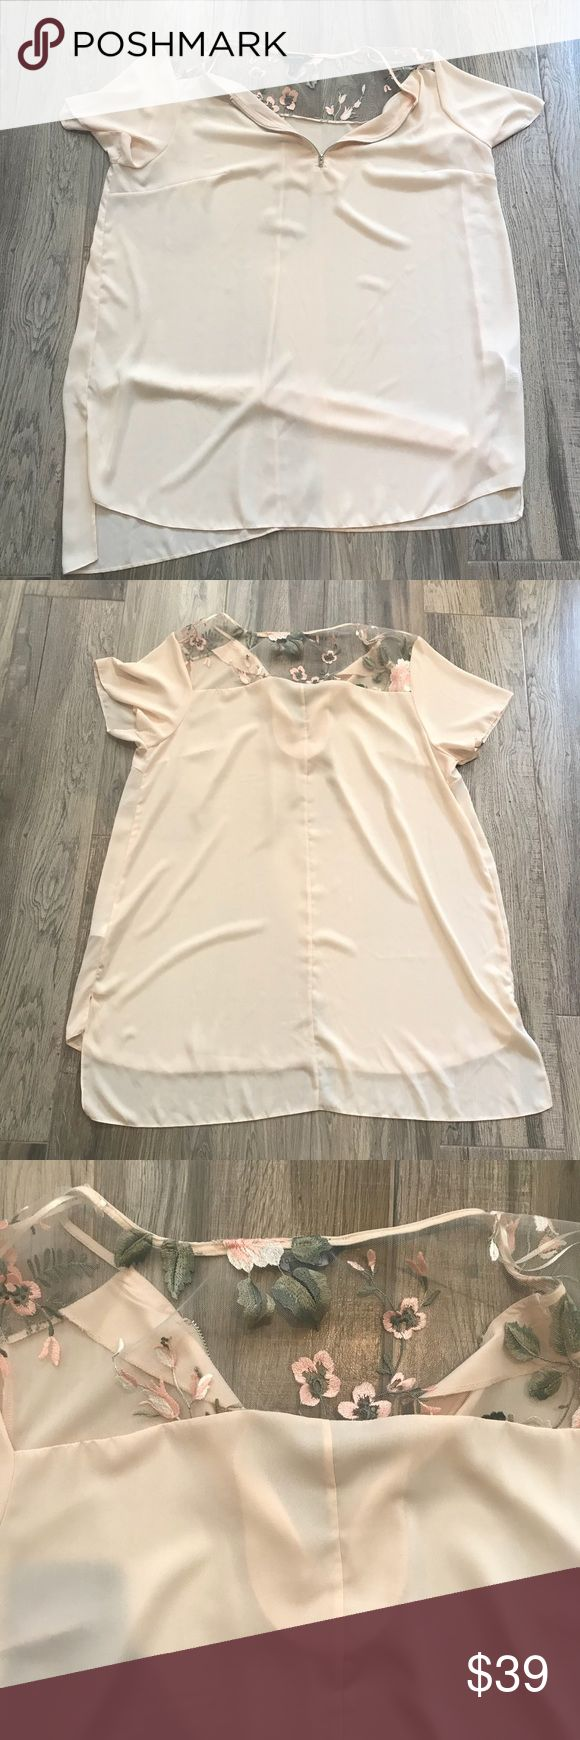 New Look Beige Floral Chiffon Blouse Like new no rips stains or tears. Half zippered front. Looks great with jeans and heels or with boots and leggings New Look Tops Blouses